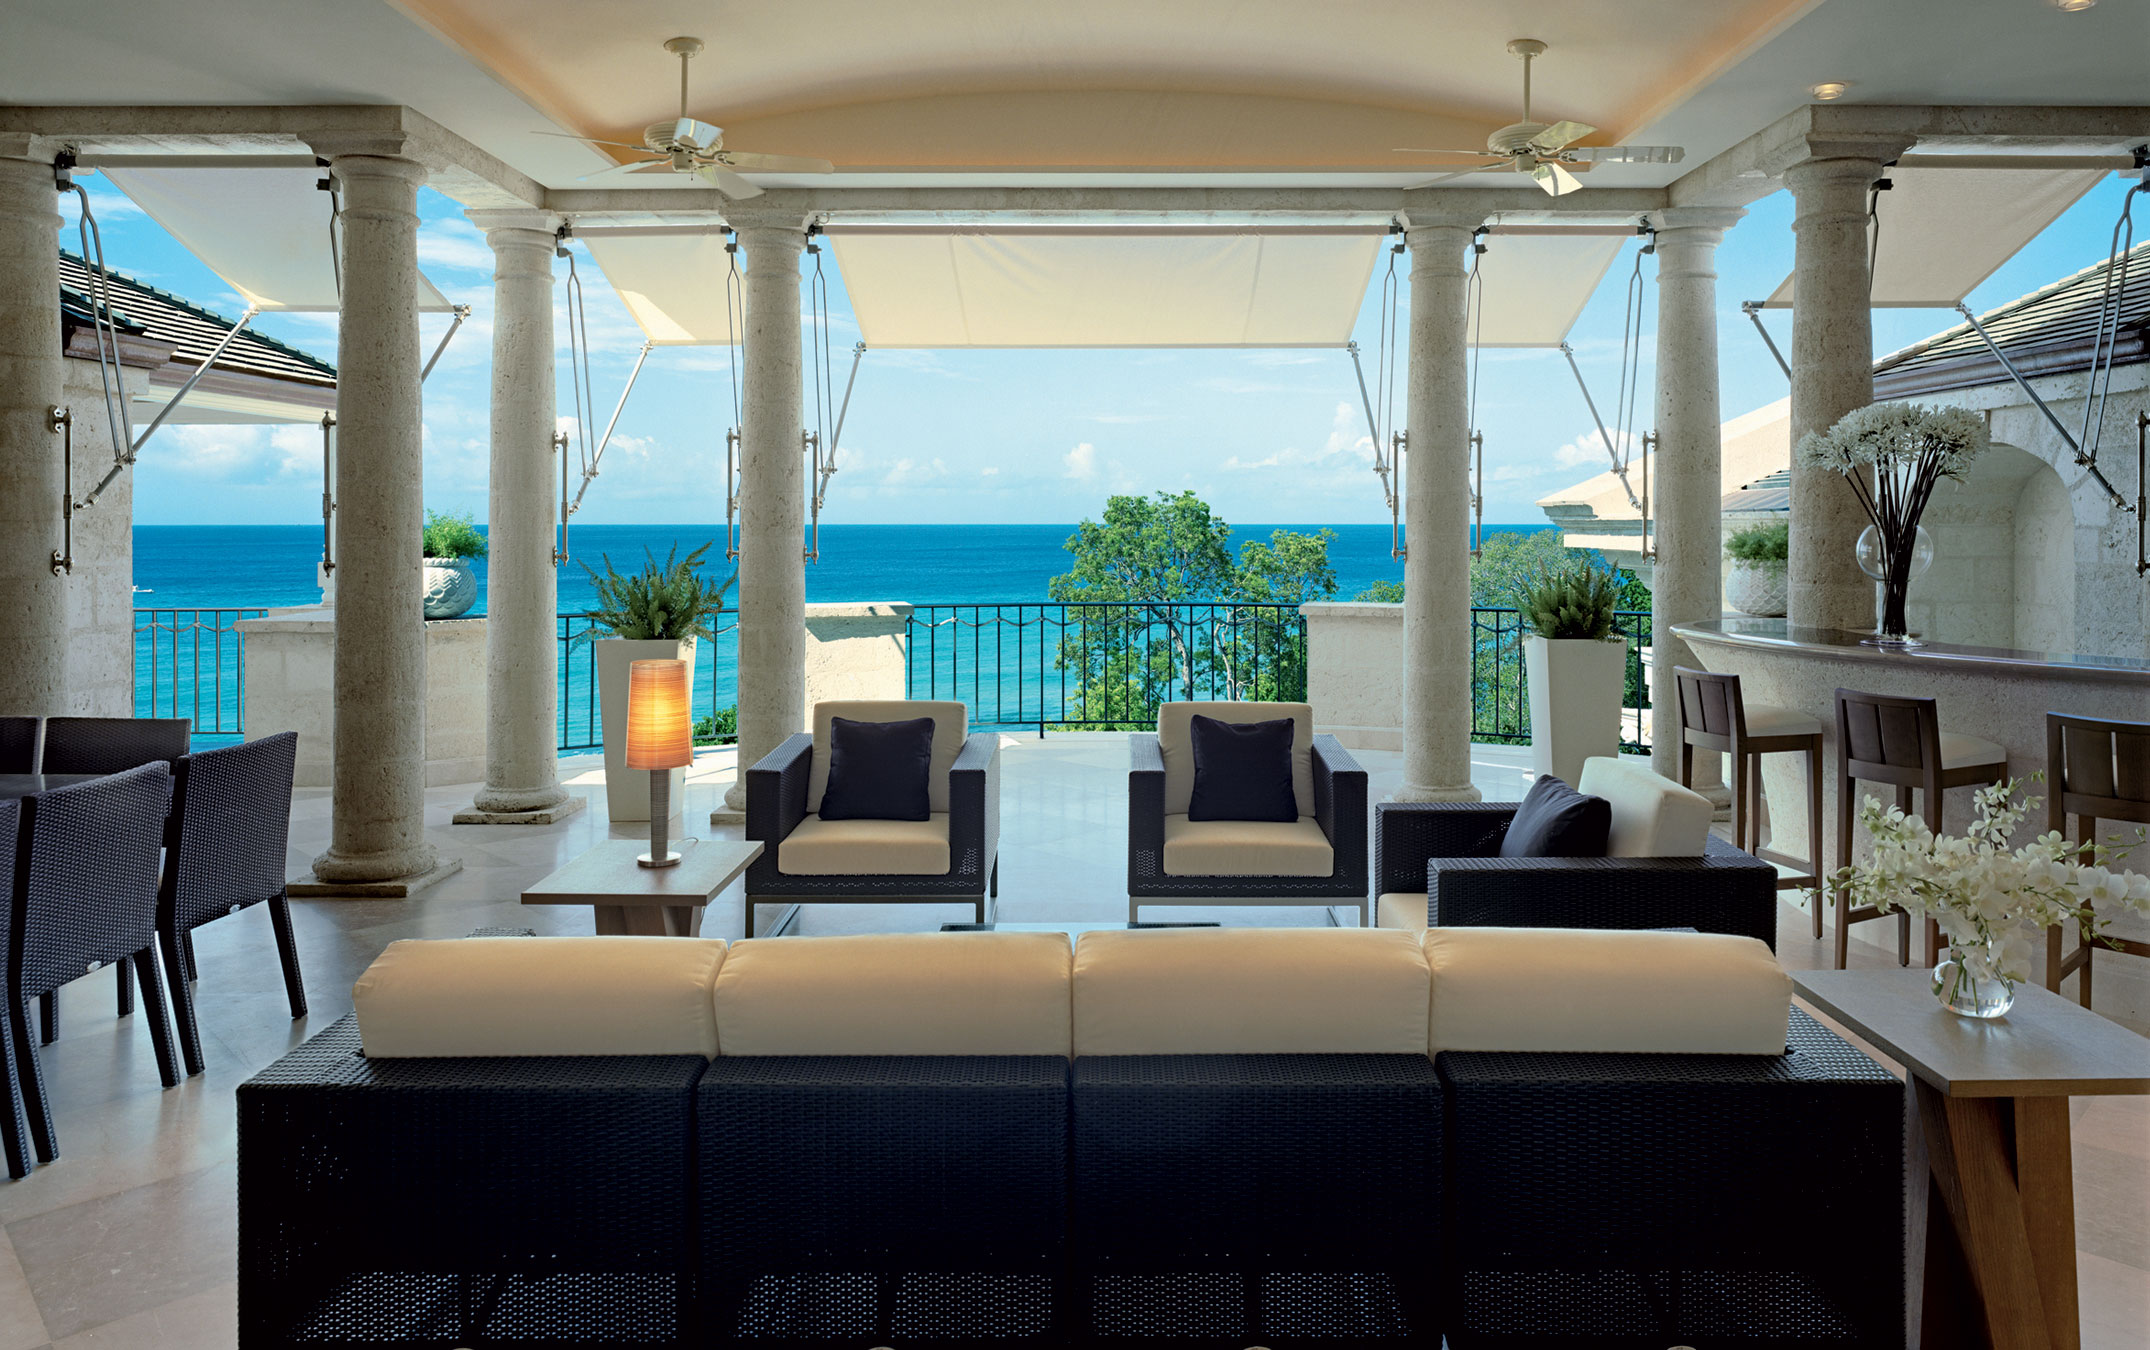 One Sandy Lane was built to emulate the beauty of the Sandy Lane Hotel, the legendary resort on the Platinum Coast of Barbados.